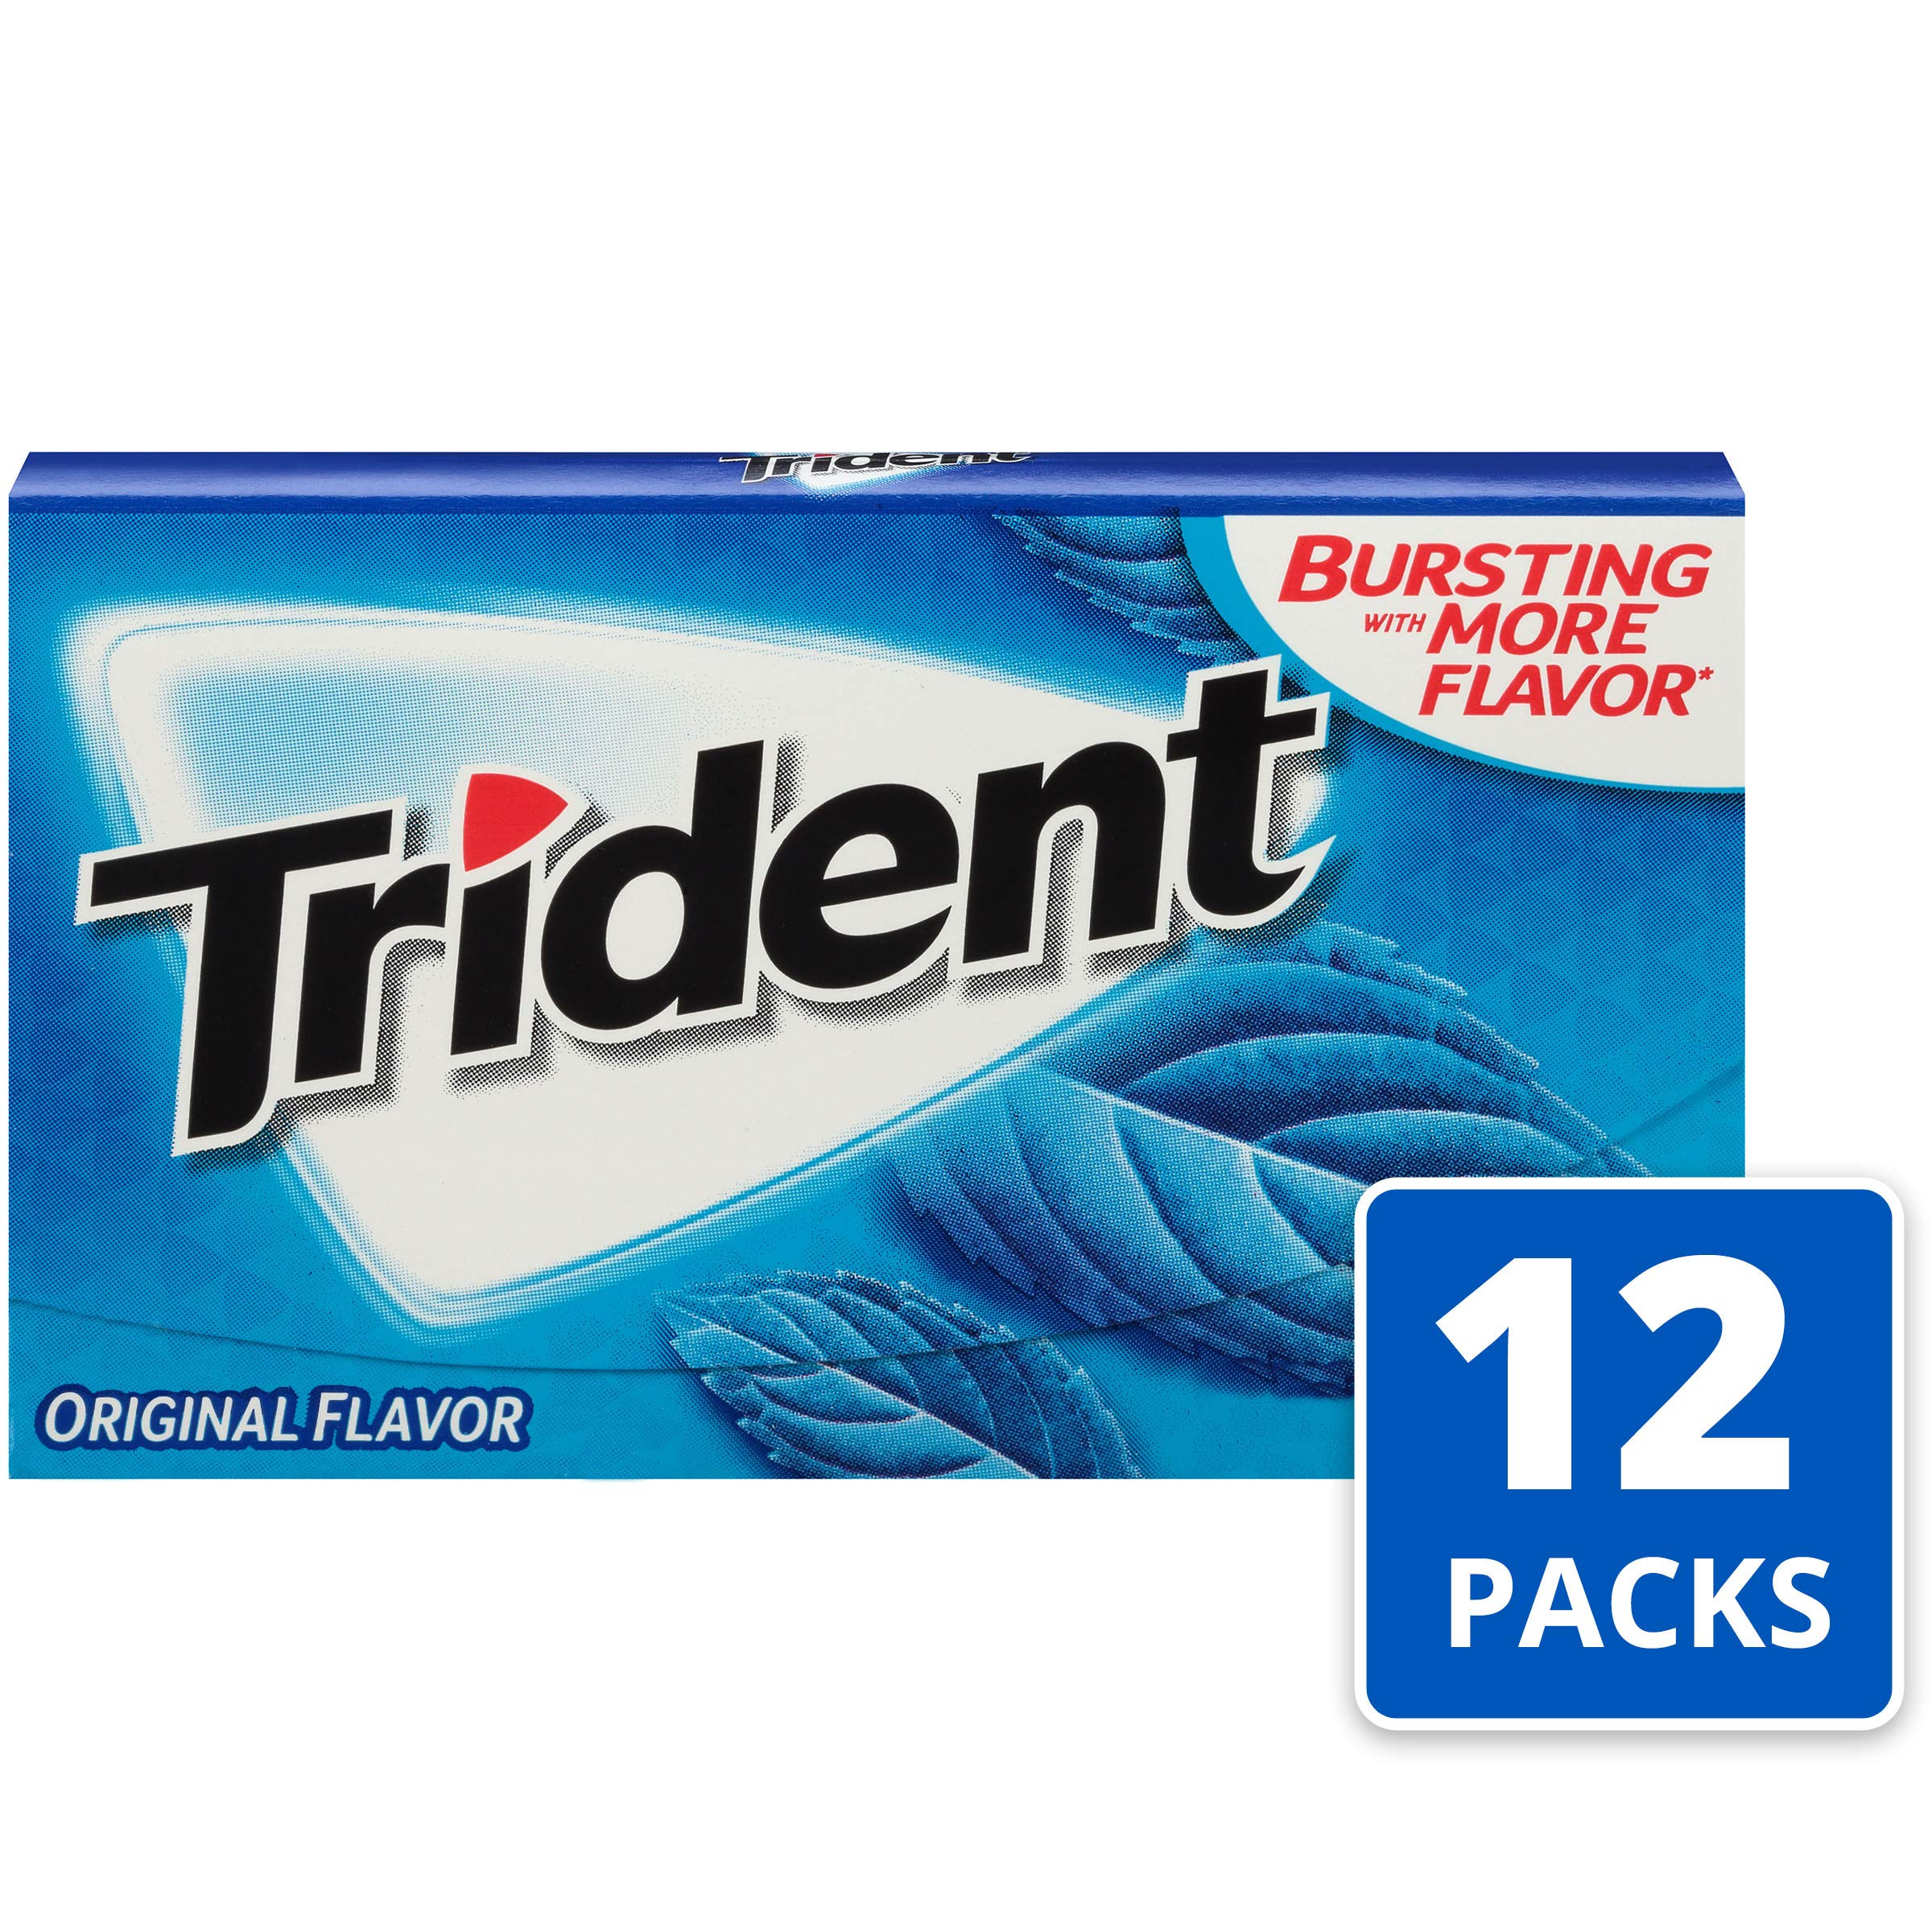 Trident Original Flavor Sugar Free Gum - with Xylitol - 12 Packs (168 Pieces Total) by Trident